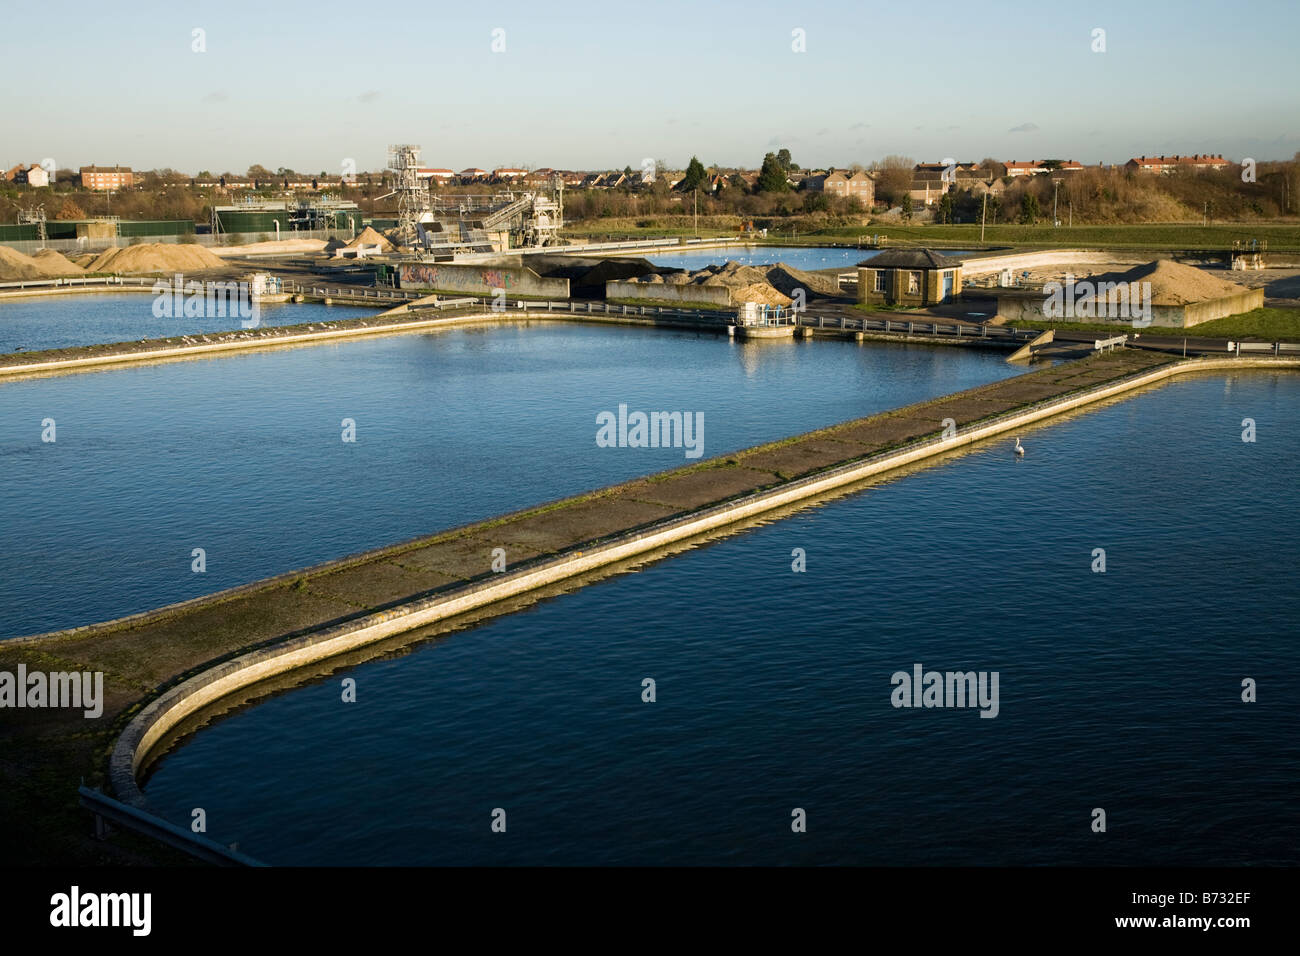 Filter beds at Thames Water treatment works at Kempton, Middlesex. UK. (44) Stock Photo